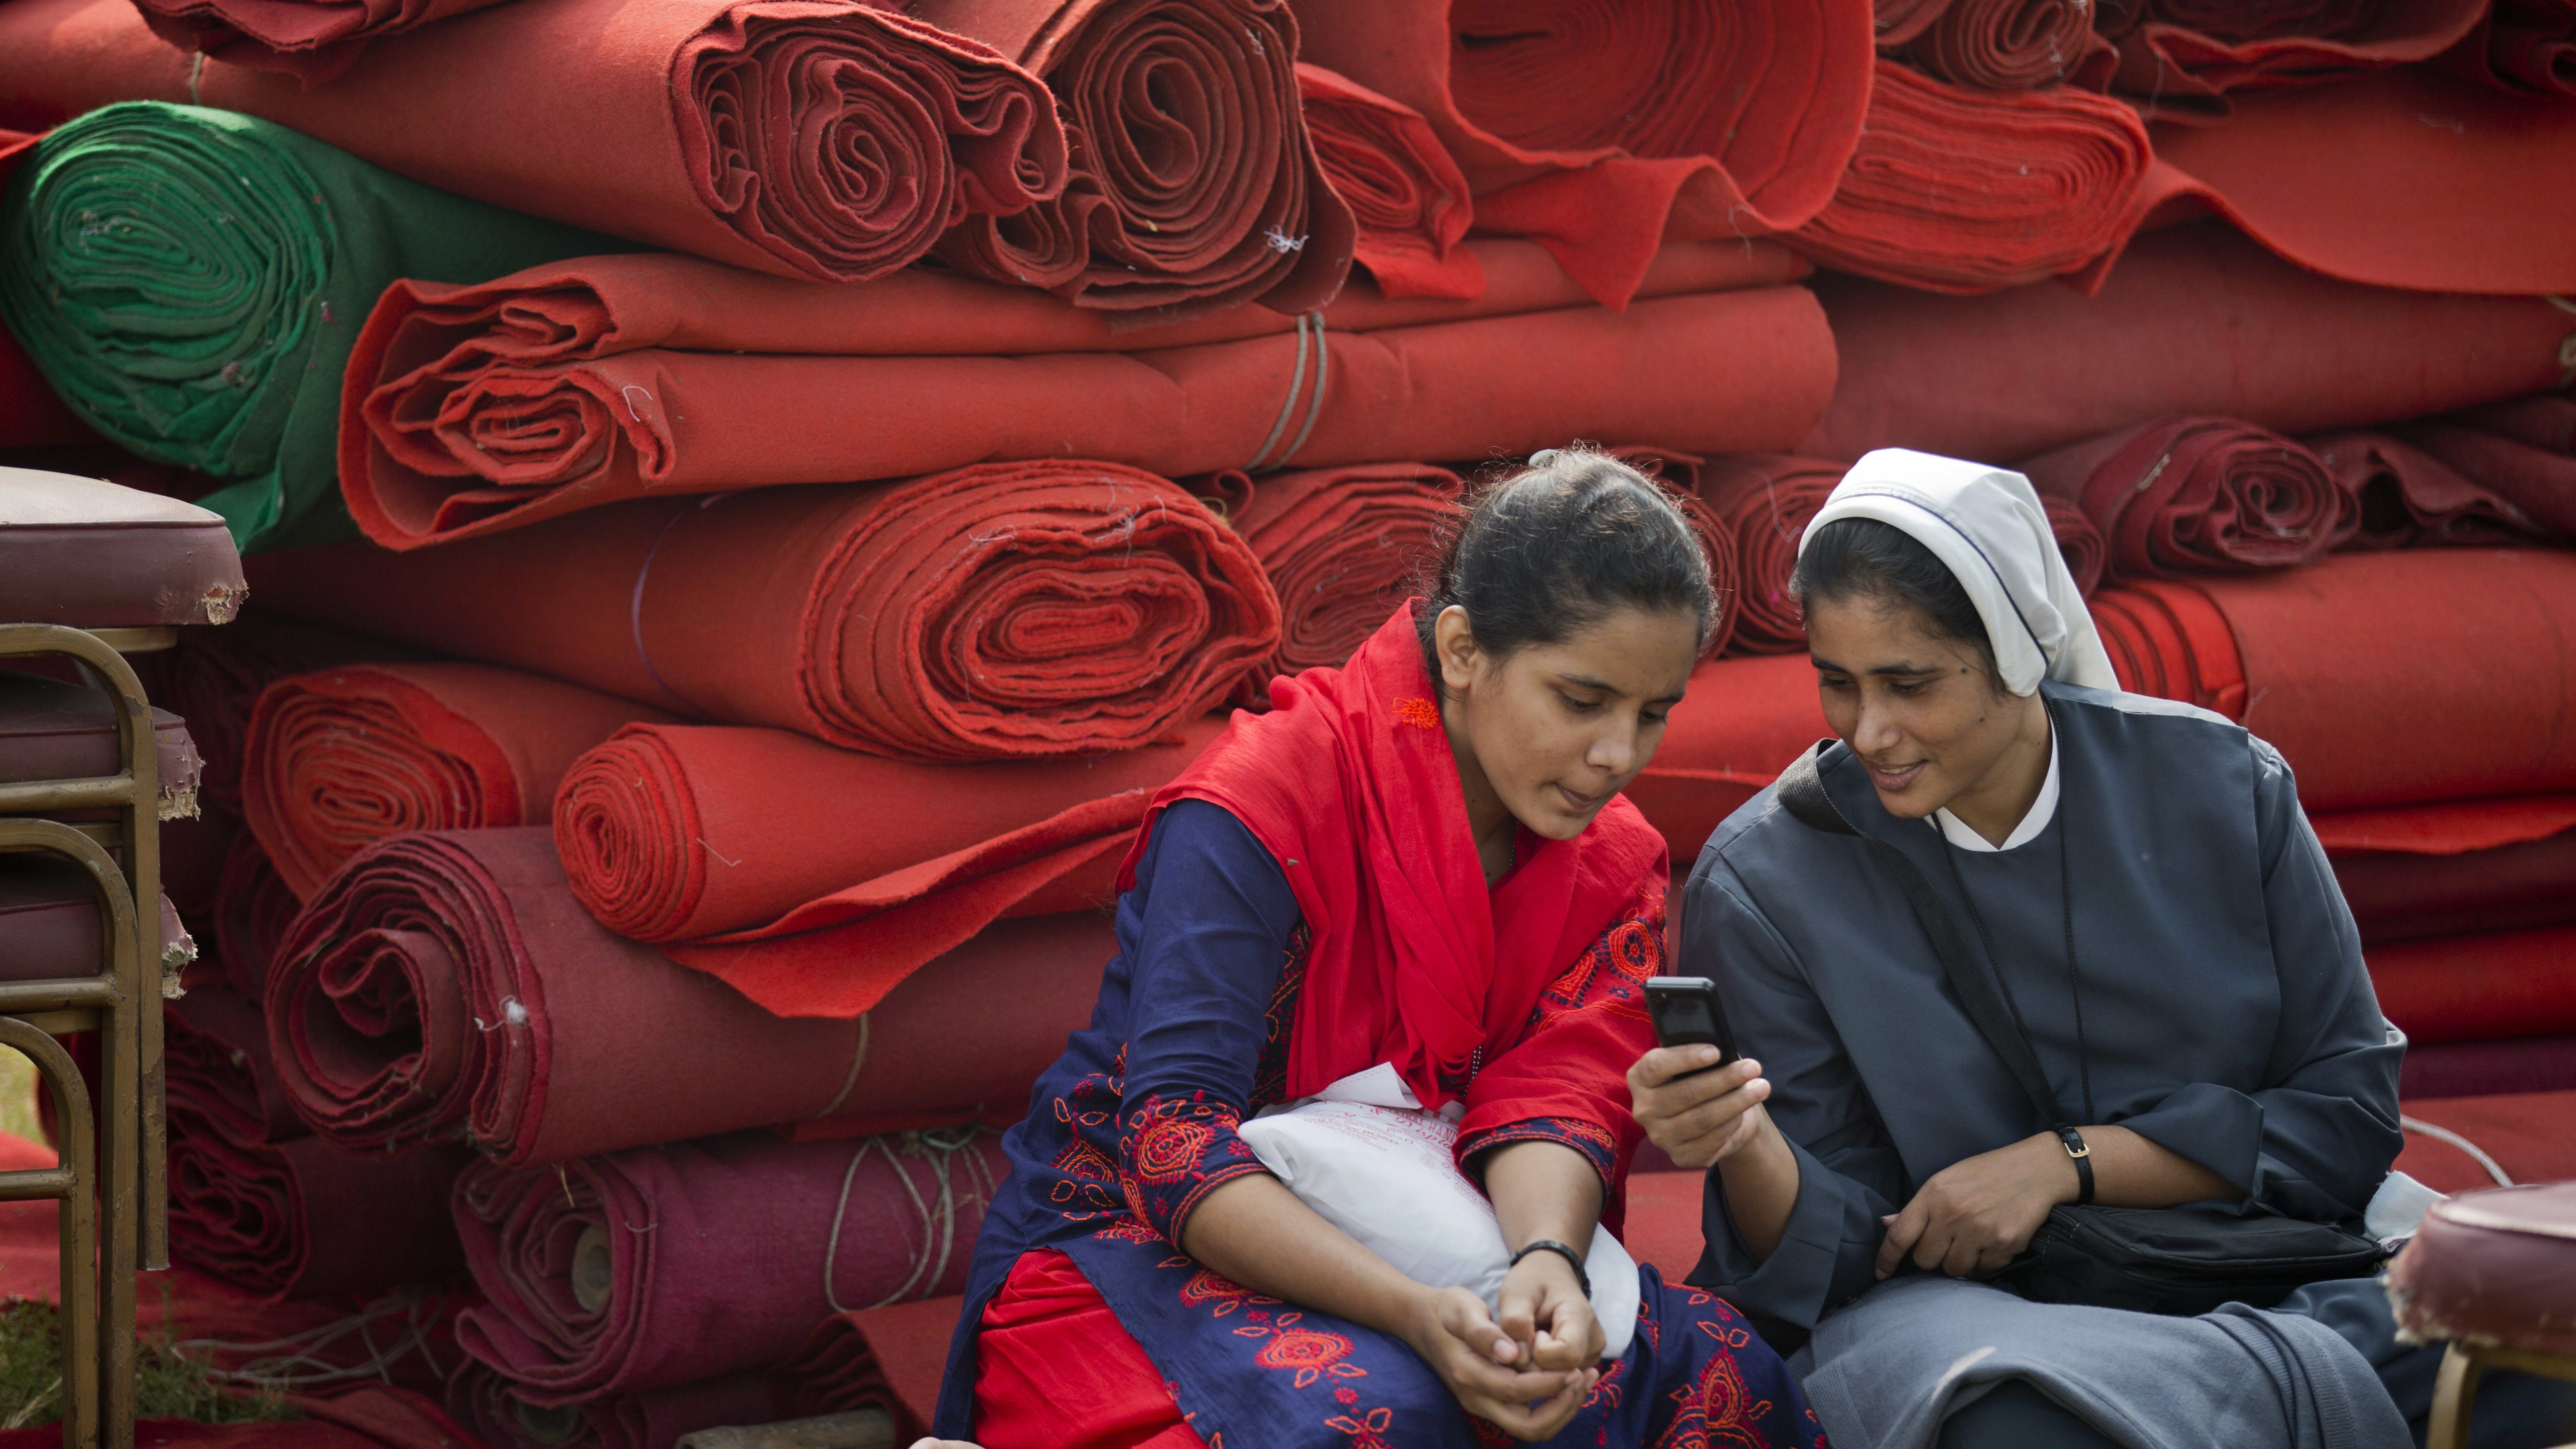 A Bangladeshi Catholic nun checks a mobile phone as workers prepare a makeshift stage where Pope Francis is expected to lead a holy mass in Dhaka, Bangladesh, Wednesday, Nov. 29, 2017. Pope Francis is expected to arrive in Bangladesh Thursday on the second leg of his weeklong South Asia tour. (AP Photo/A.M. Ahad)